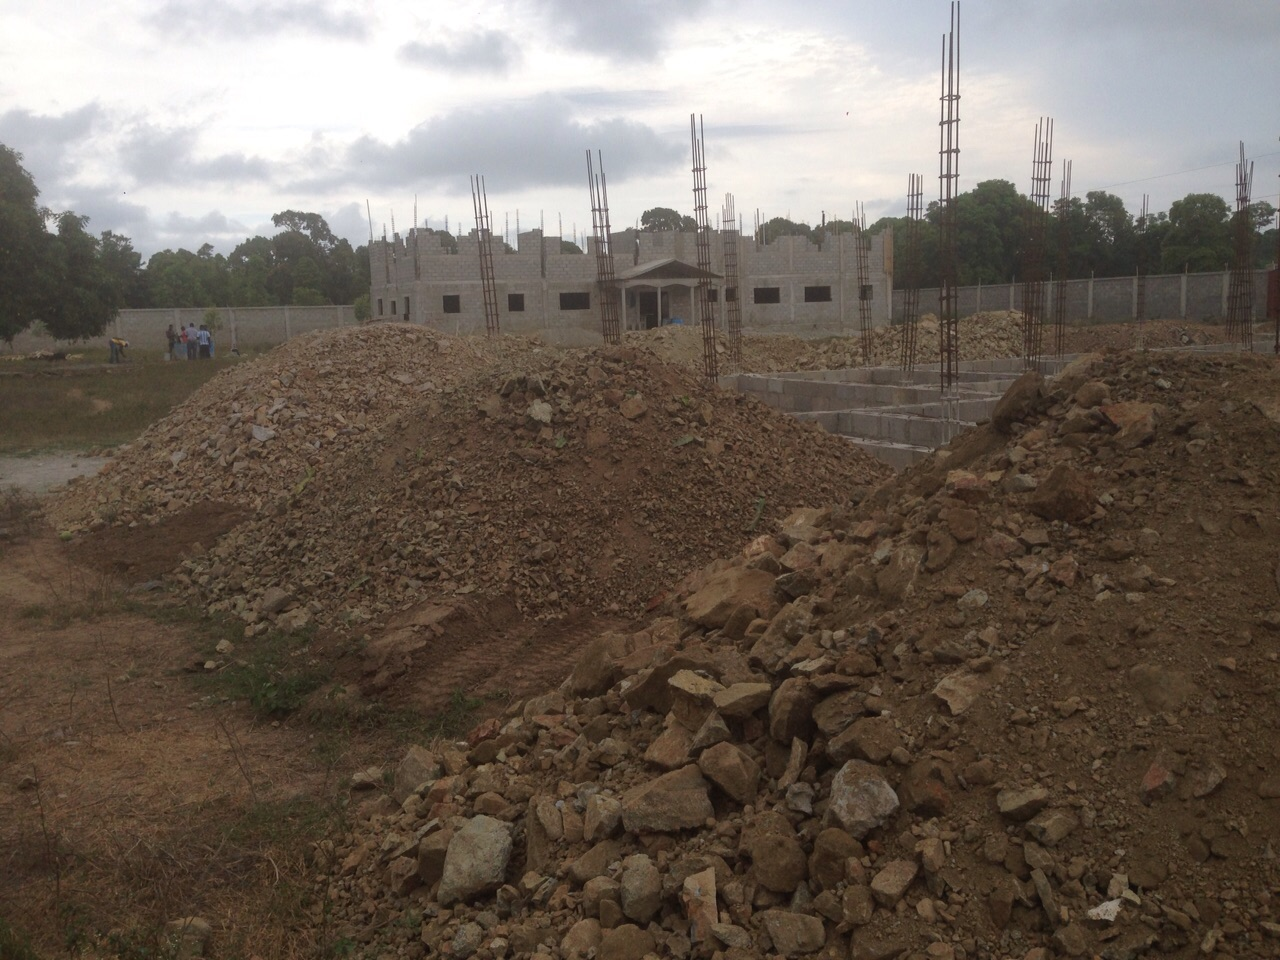 Eye Center foundation work with Medical Clinic in background